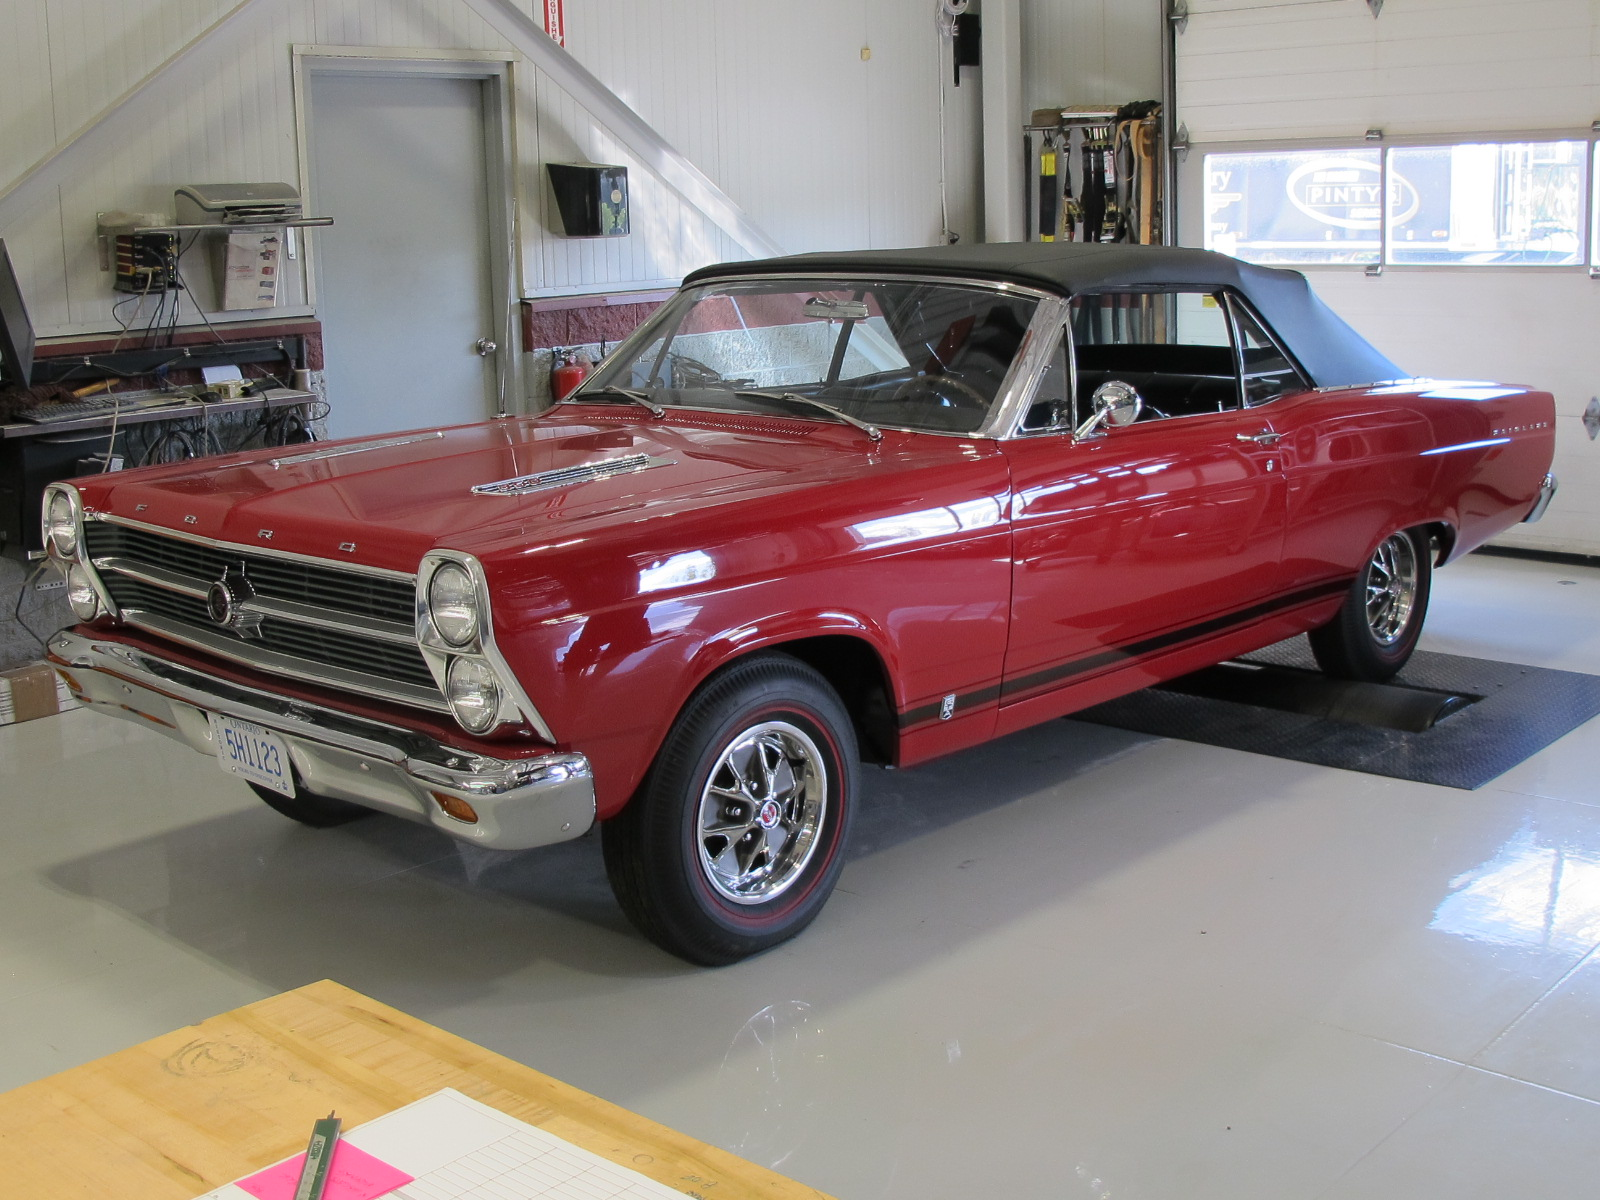 1966 Fairlane Convertible S Code 390 1969 Ford Torino Gt Photo Of